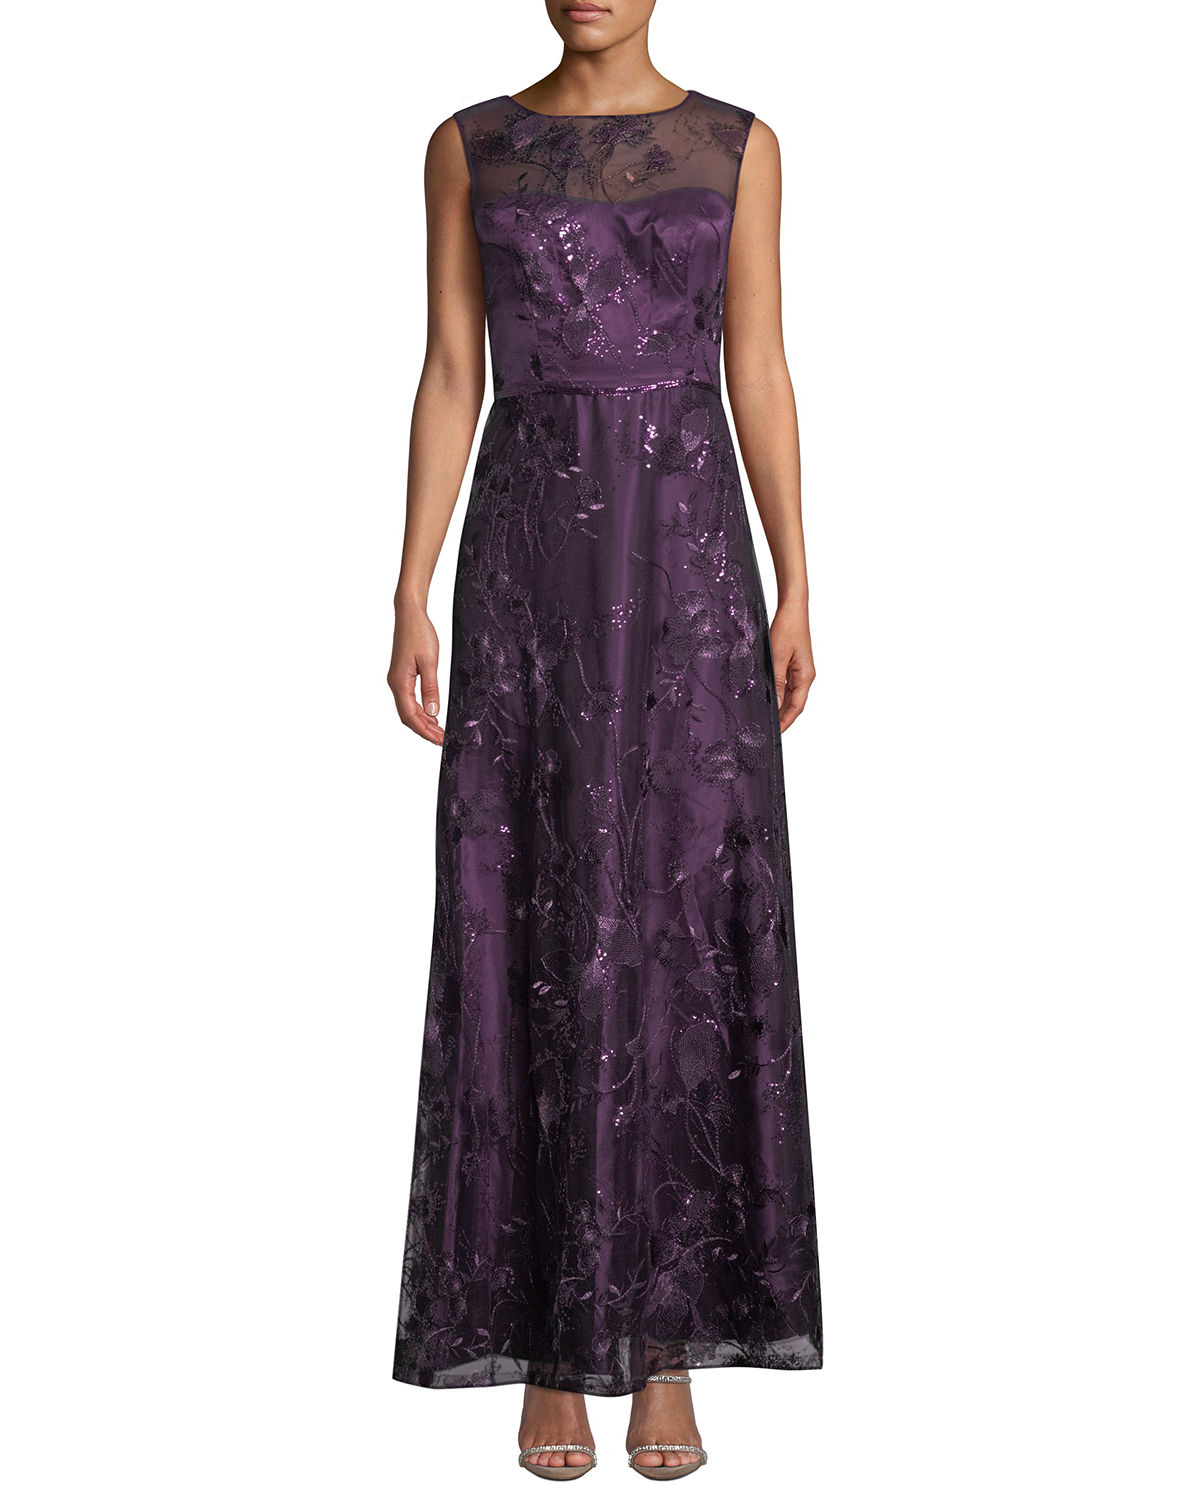 Sequin-Embellished Floral Evening Gown